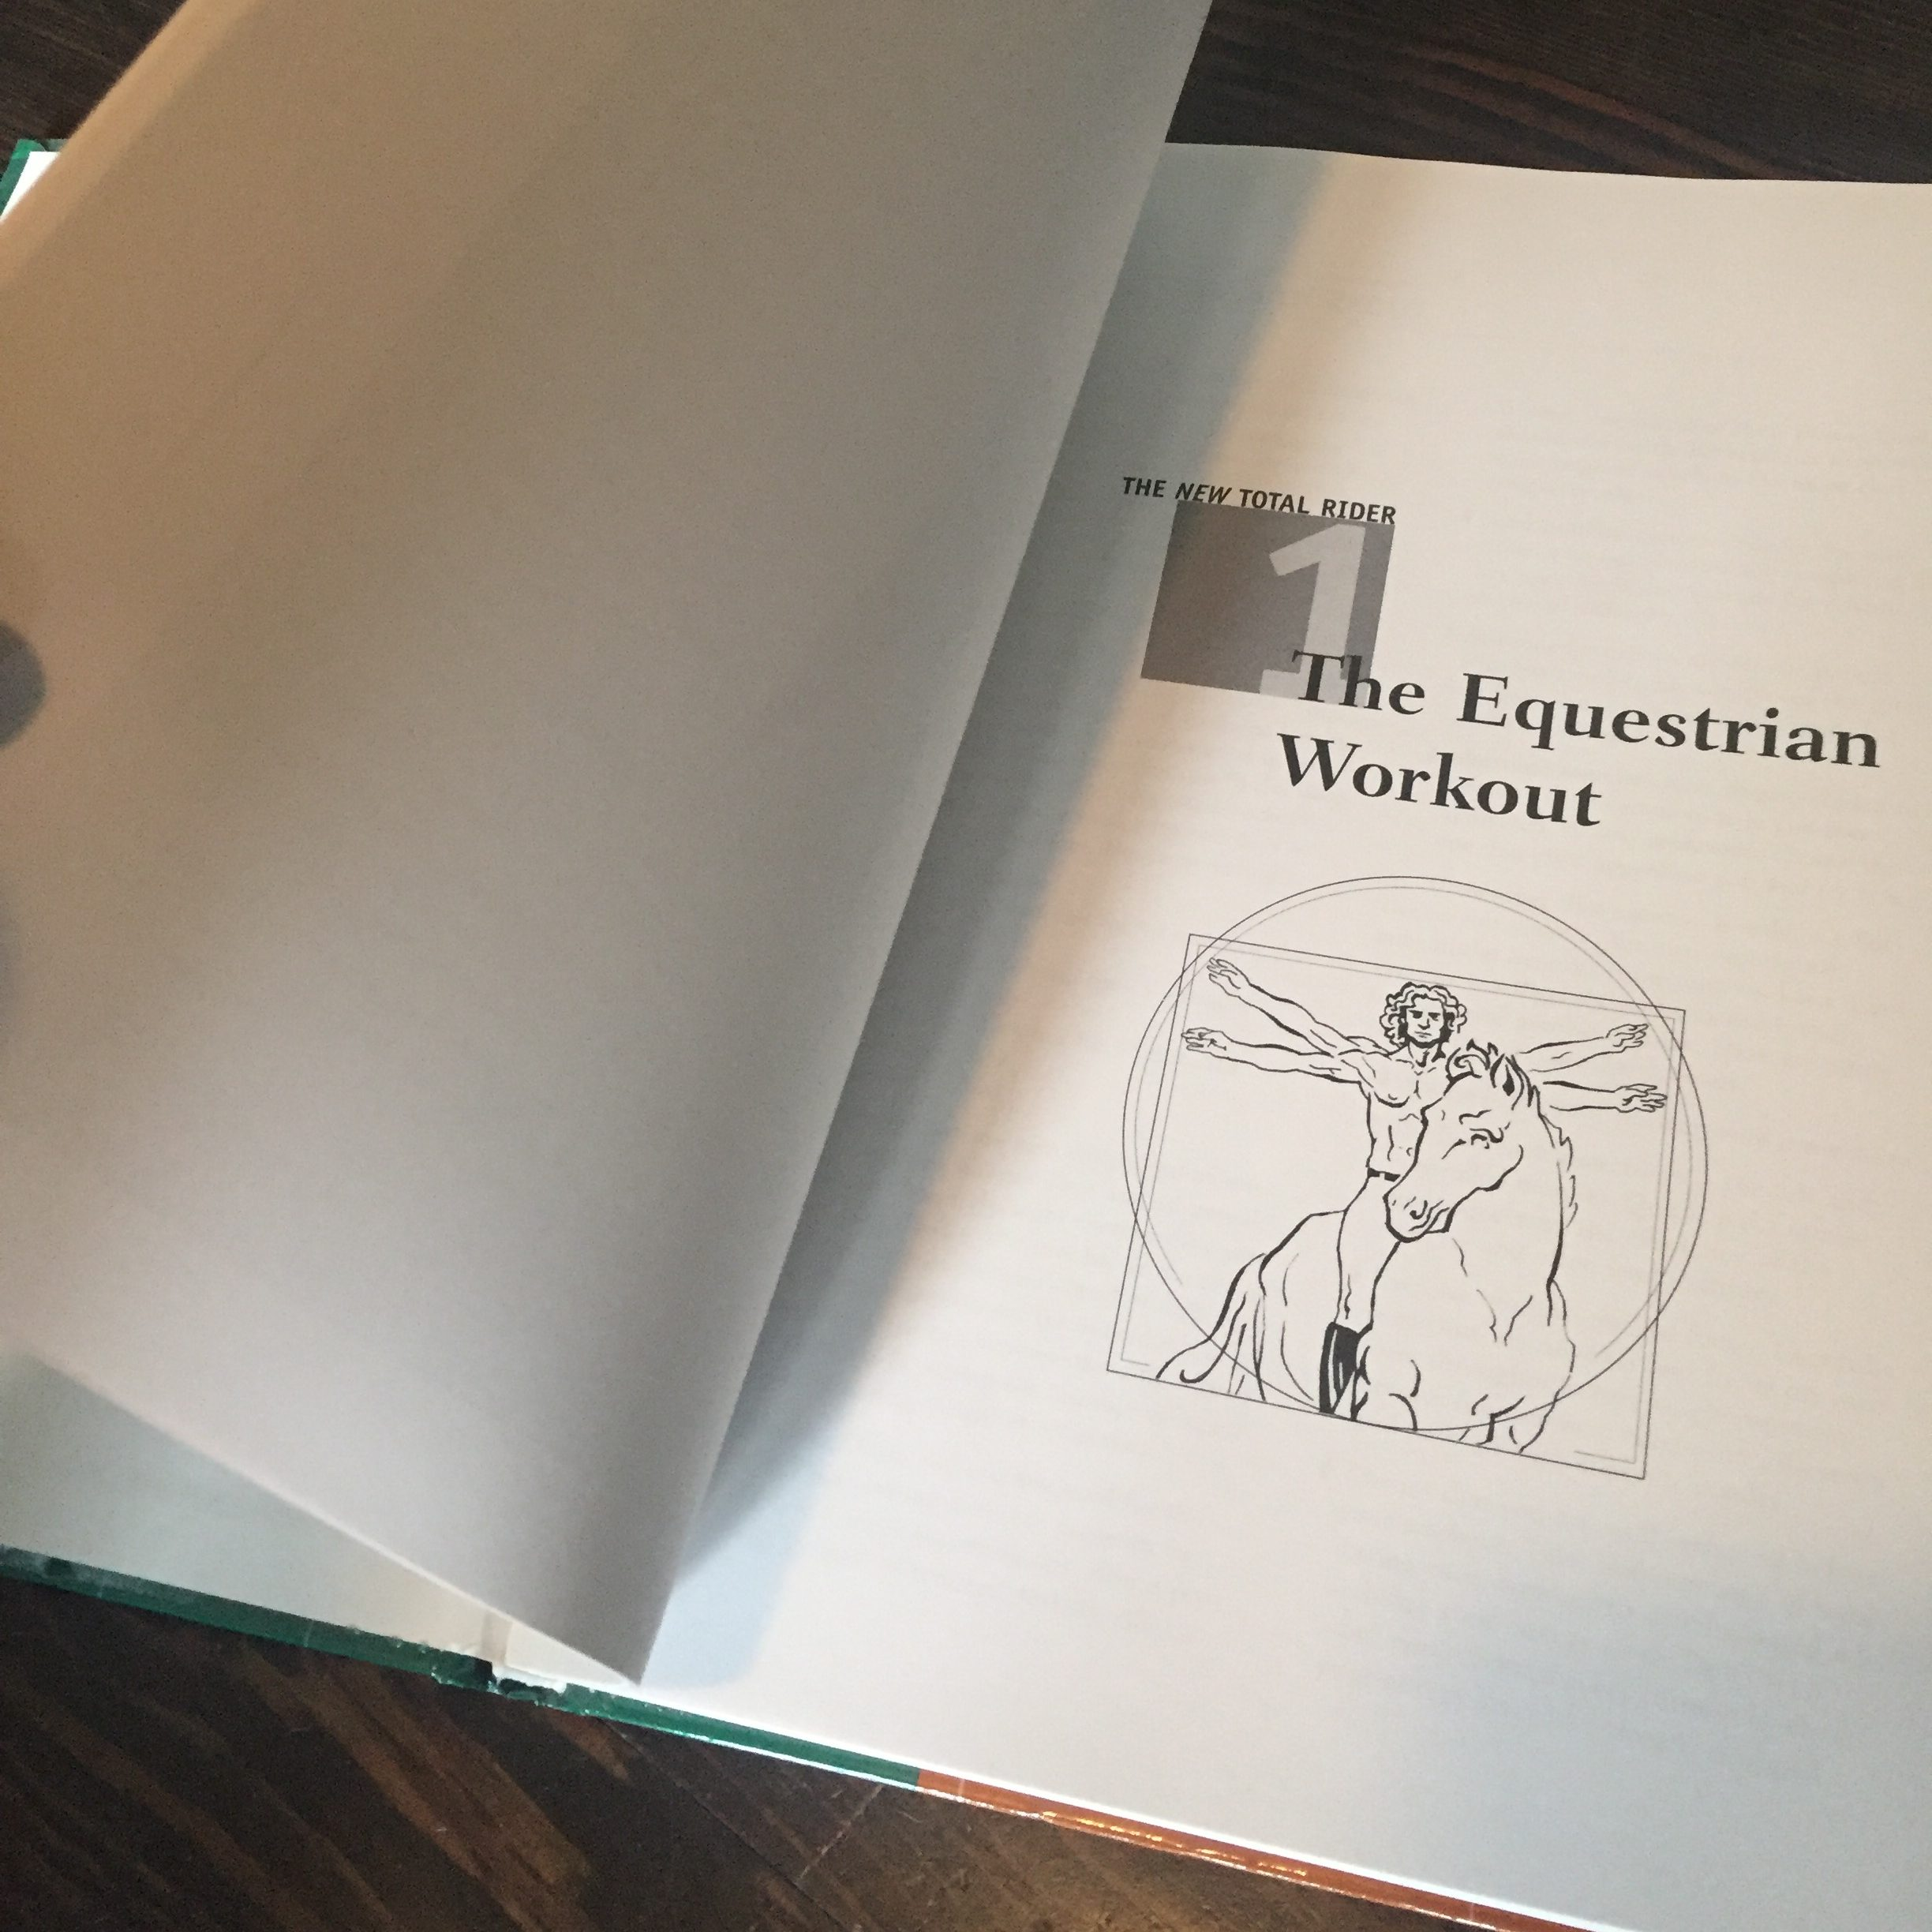 Improve your equitation with these books